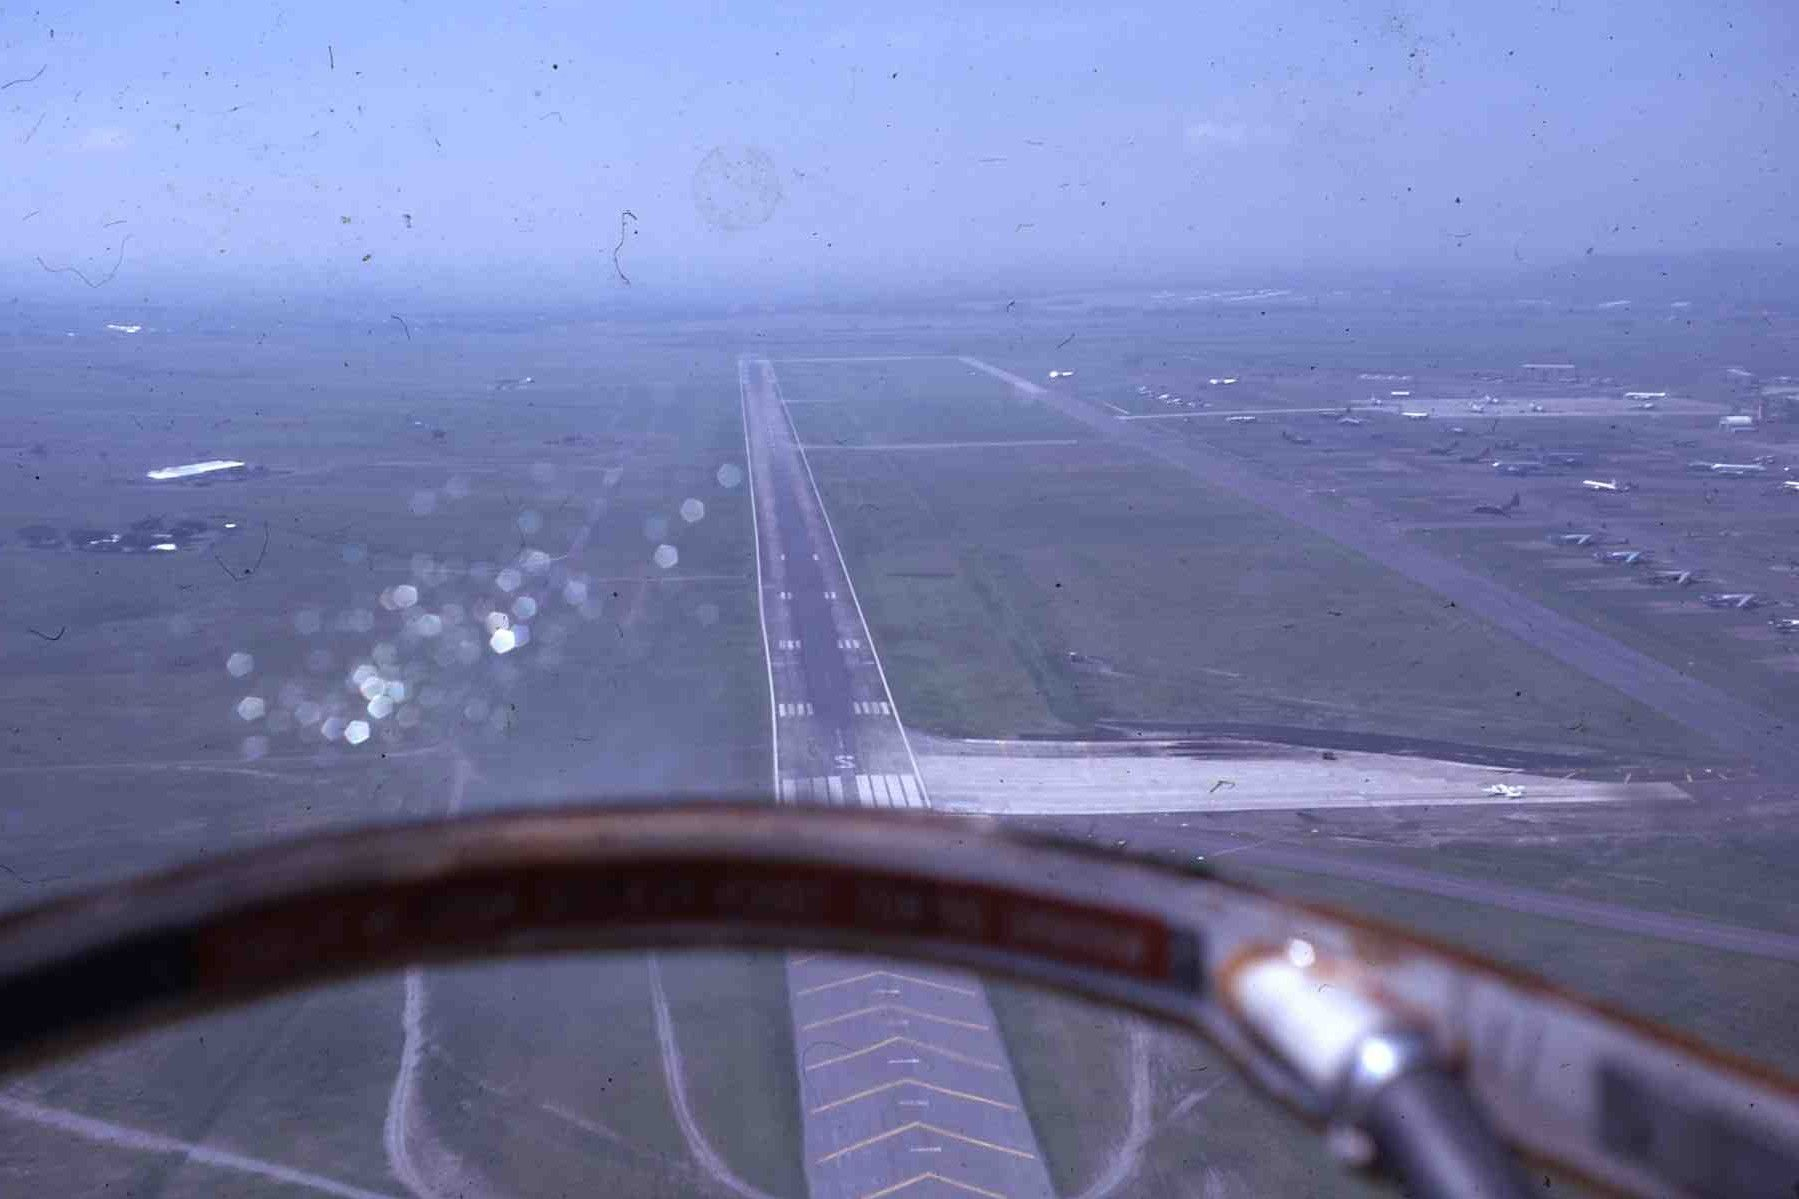 Pin by Ron McGriff on NAVY DAYS Navy day, Airplane view